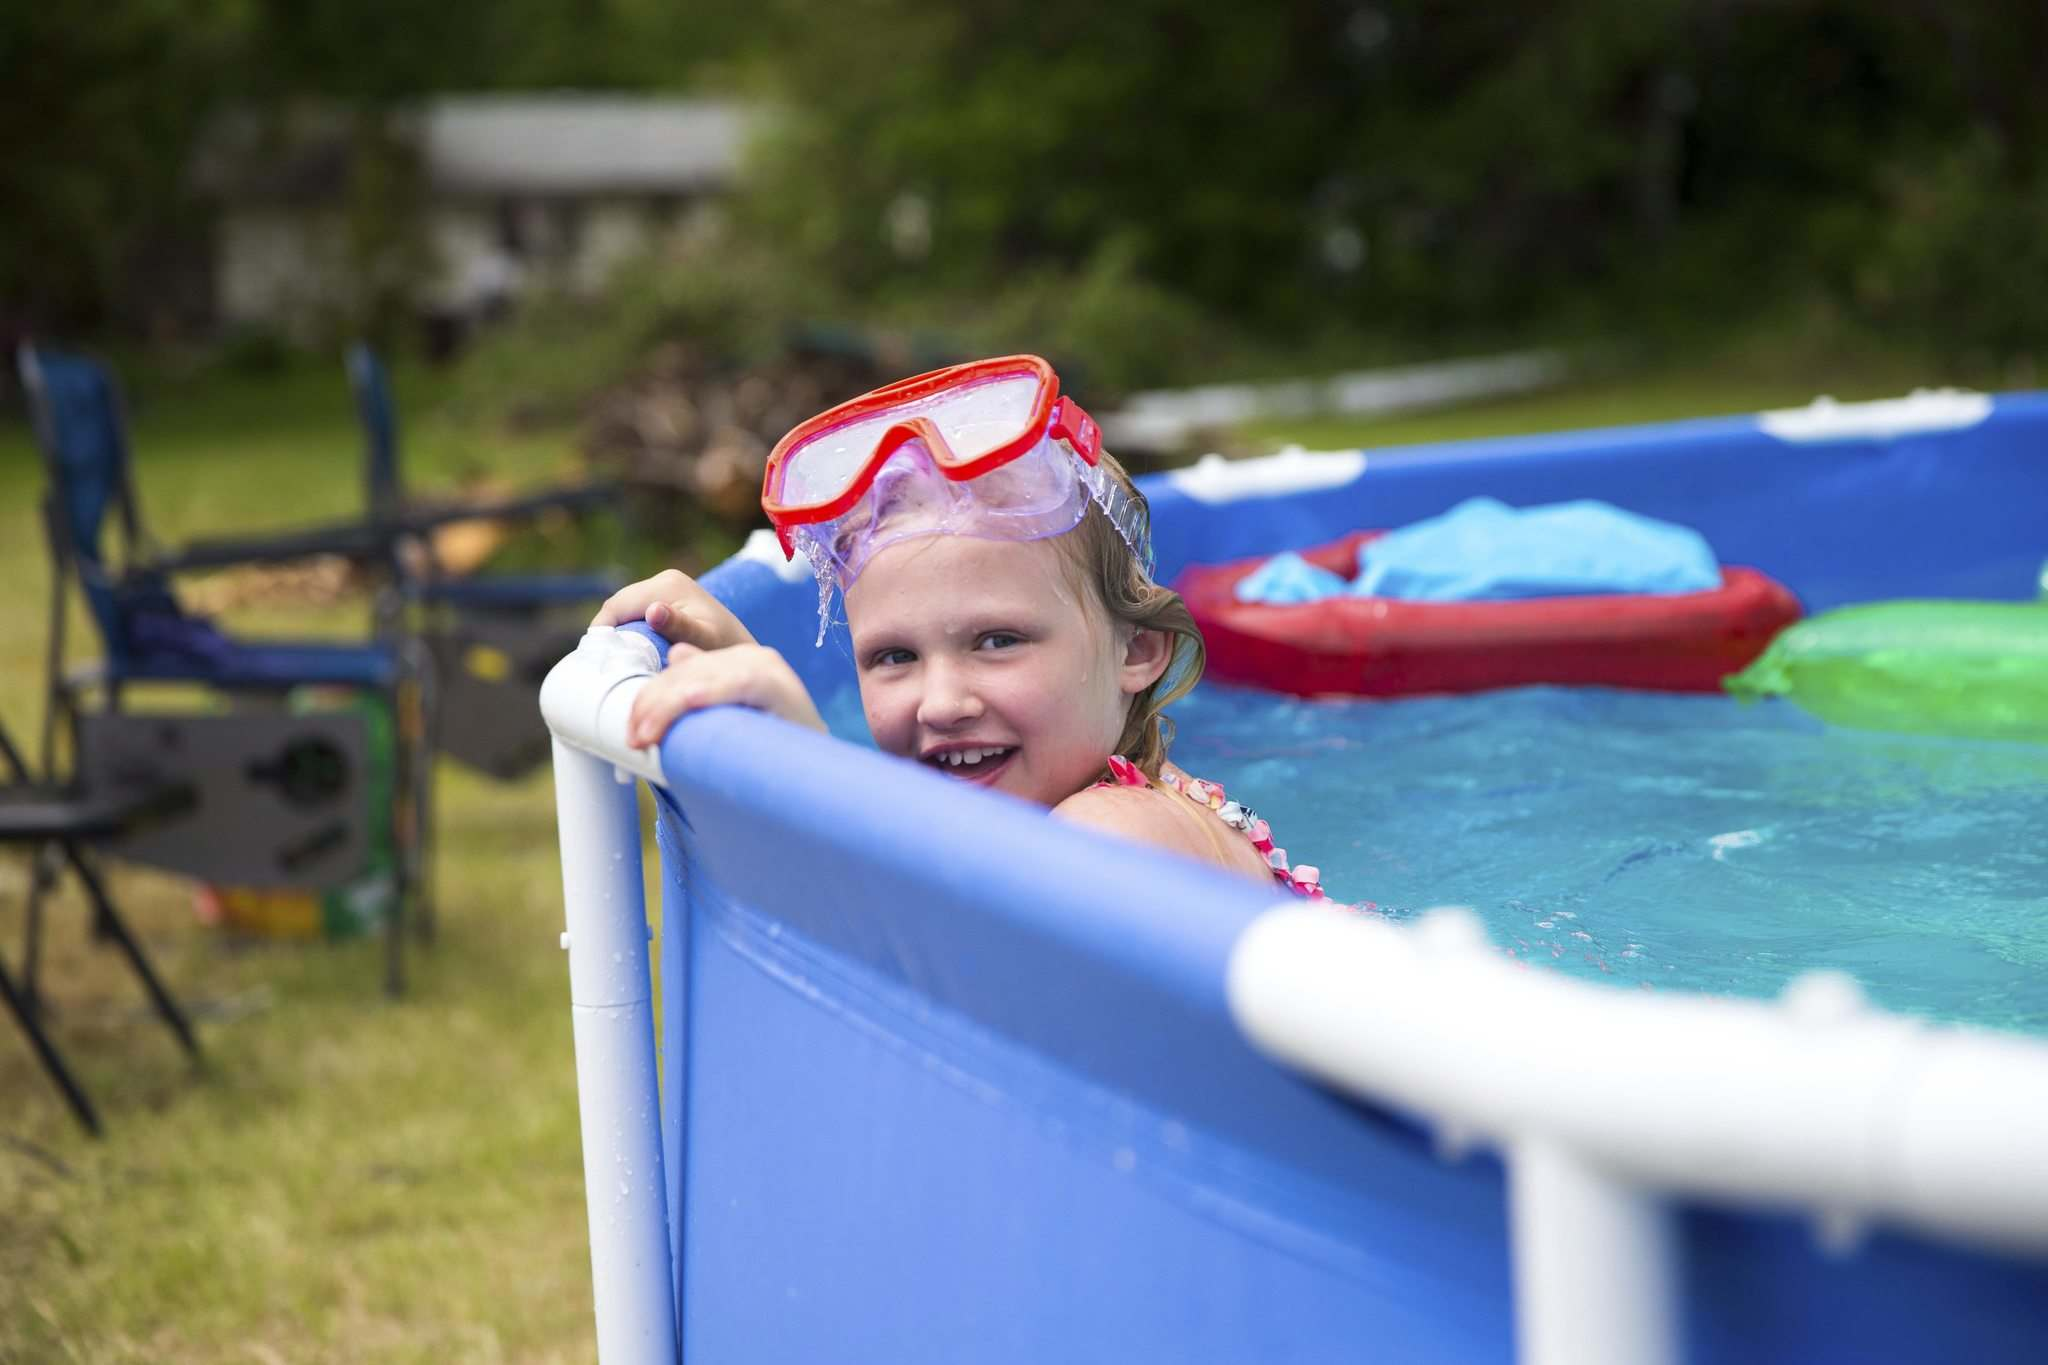 Eight-year-old Julie Kay plays in the recently installed above-ground pool at her grandparent's home in East St. Paul. (Mikaela MacKenzie / Winnipeg Free Press)